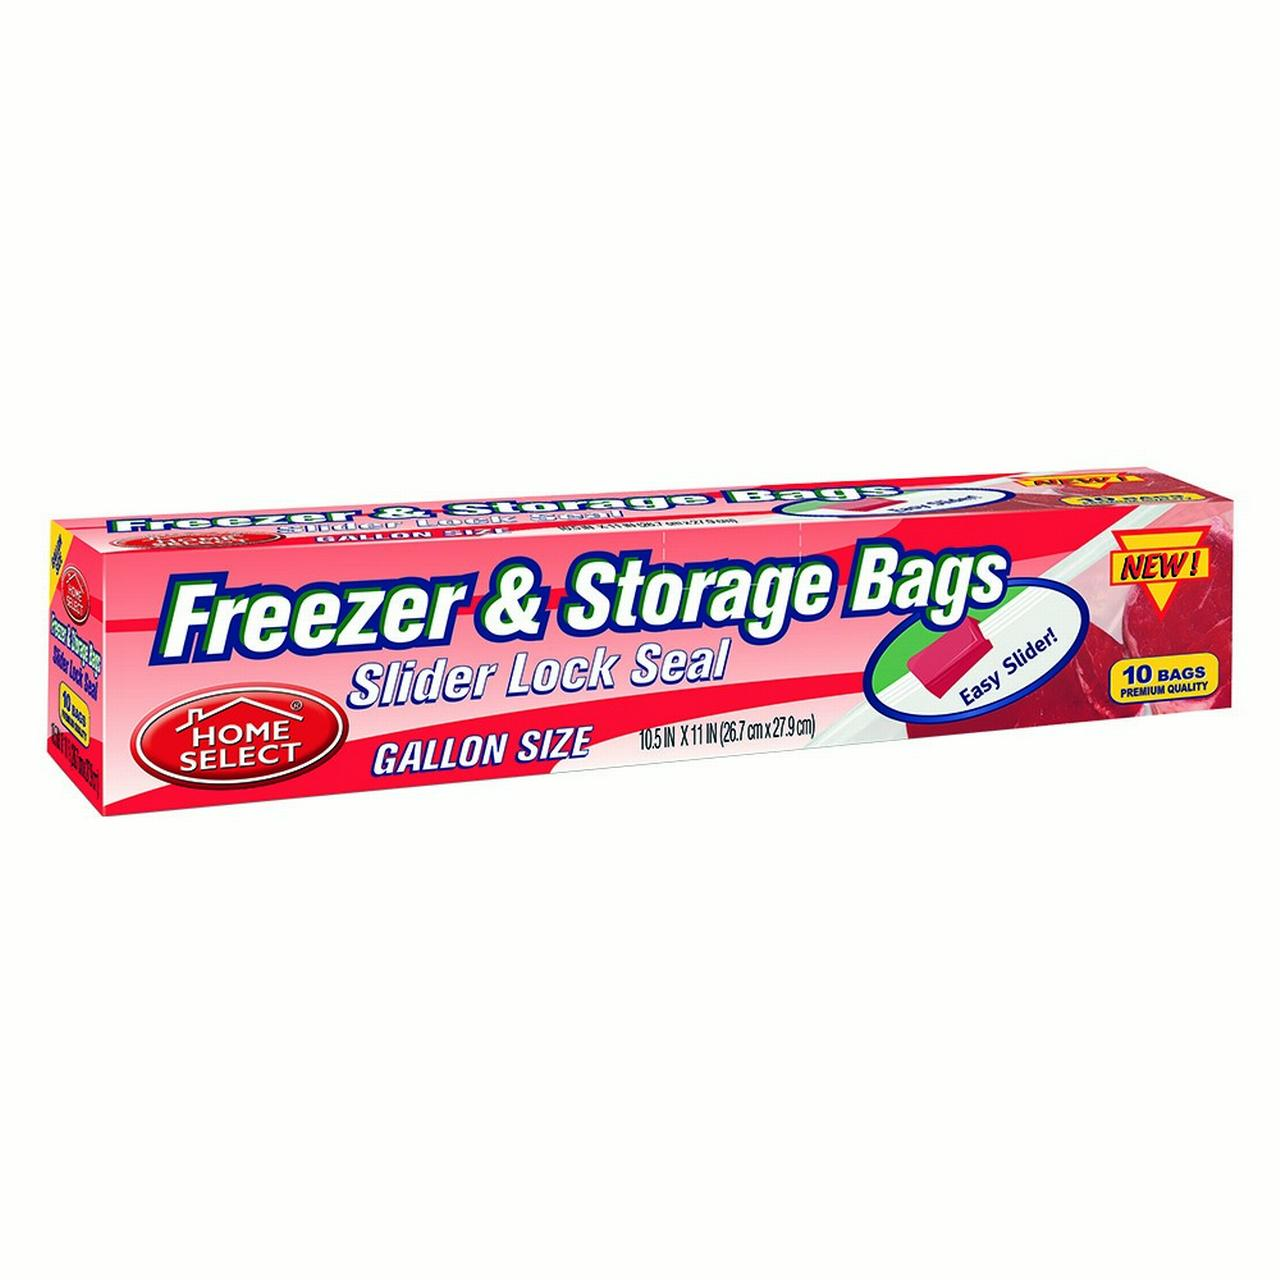 Home Select Freezer & Storage Bags, Slider Lock Seal, Gallon Size, 10 Ct